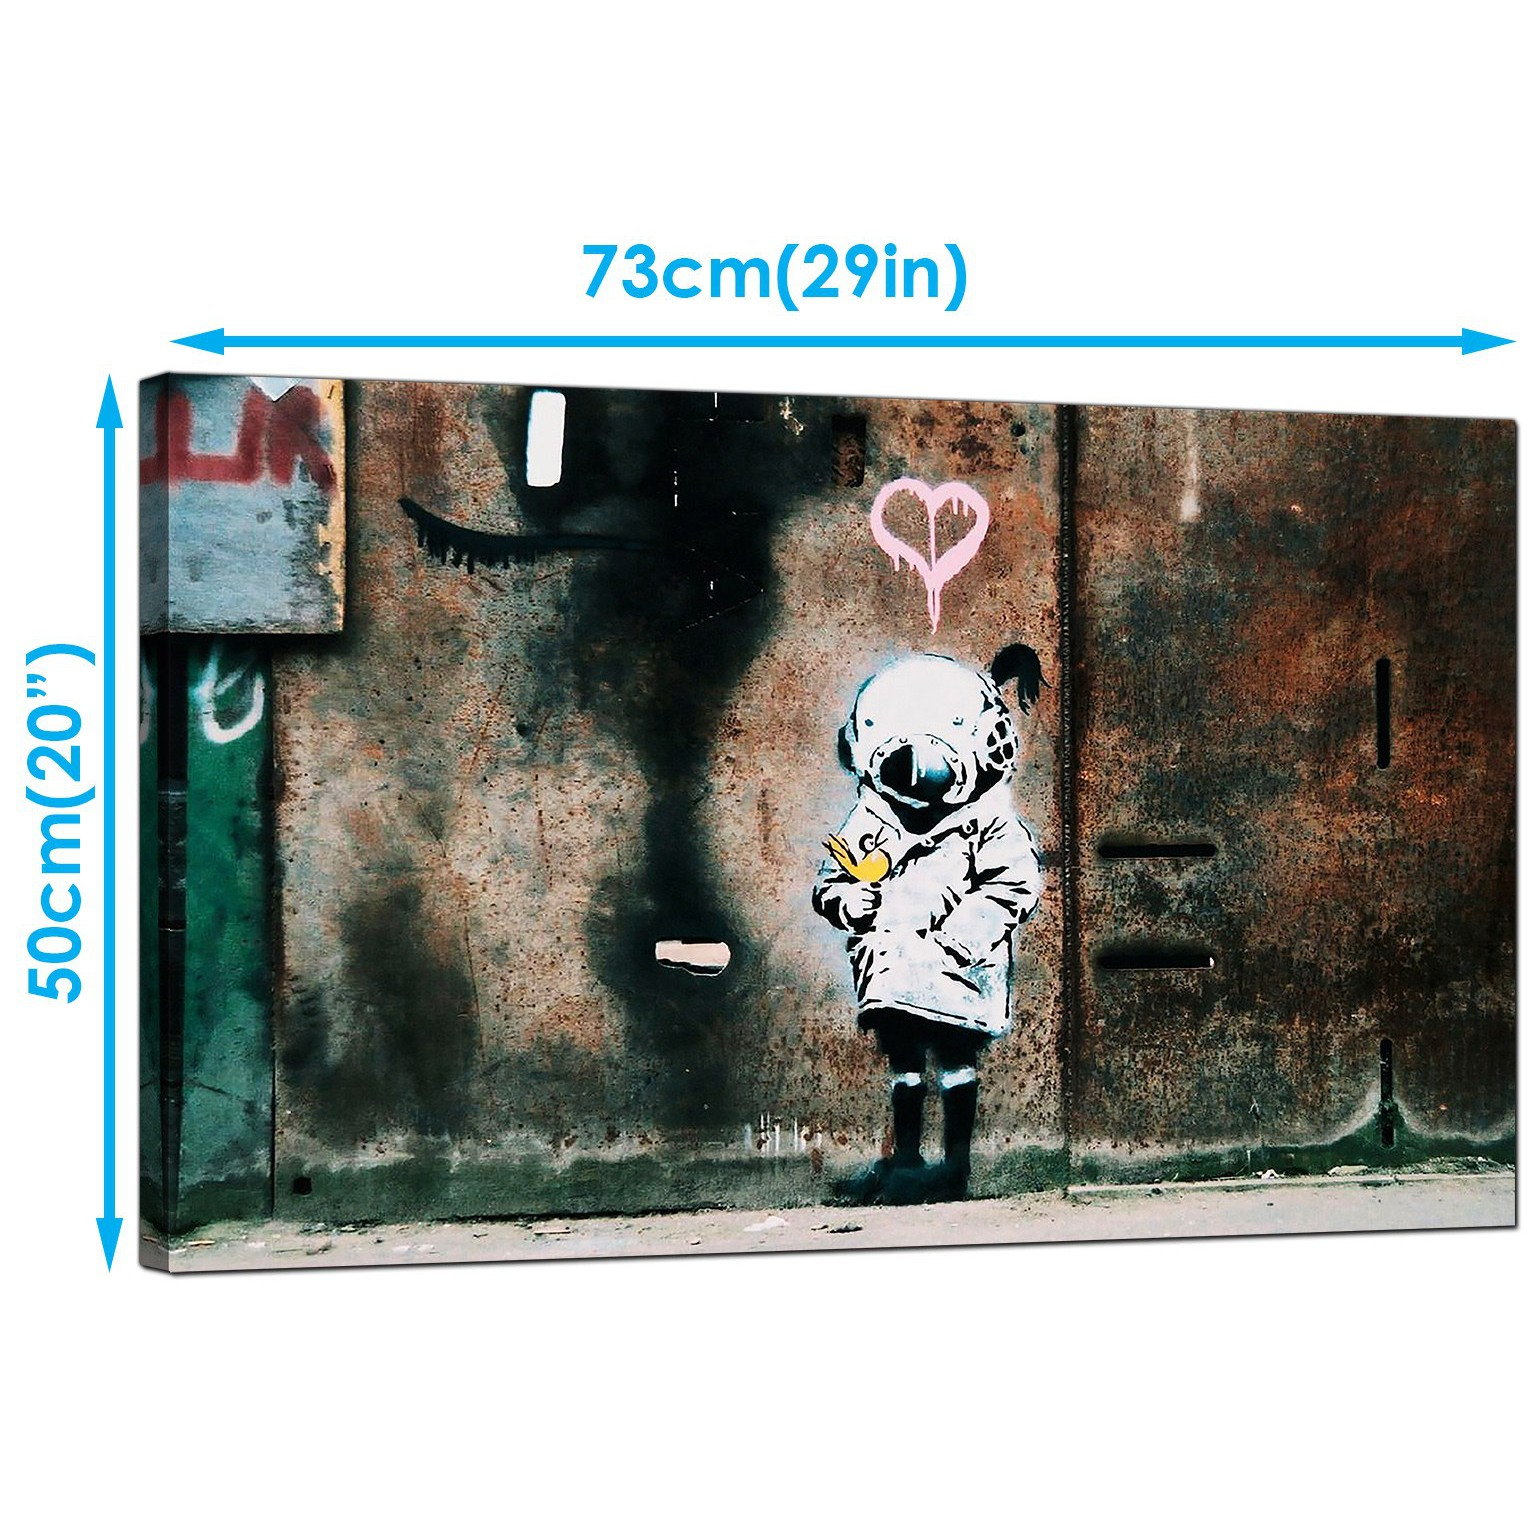 Display gallery item 3 · banksy canvas art prints space girl with bird graffiti art display gallery item 4